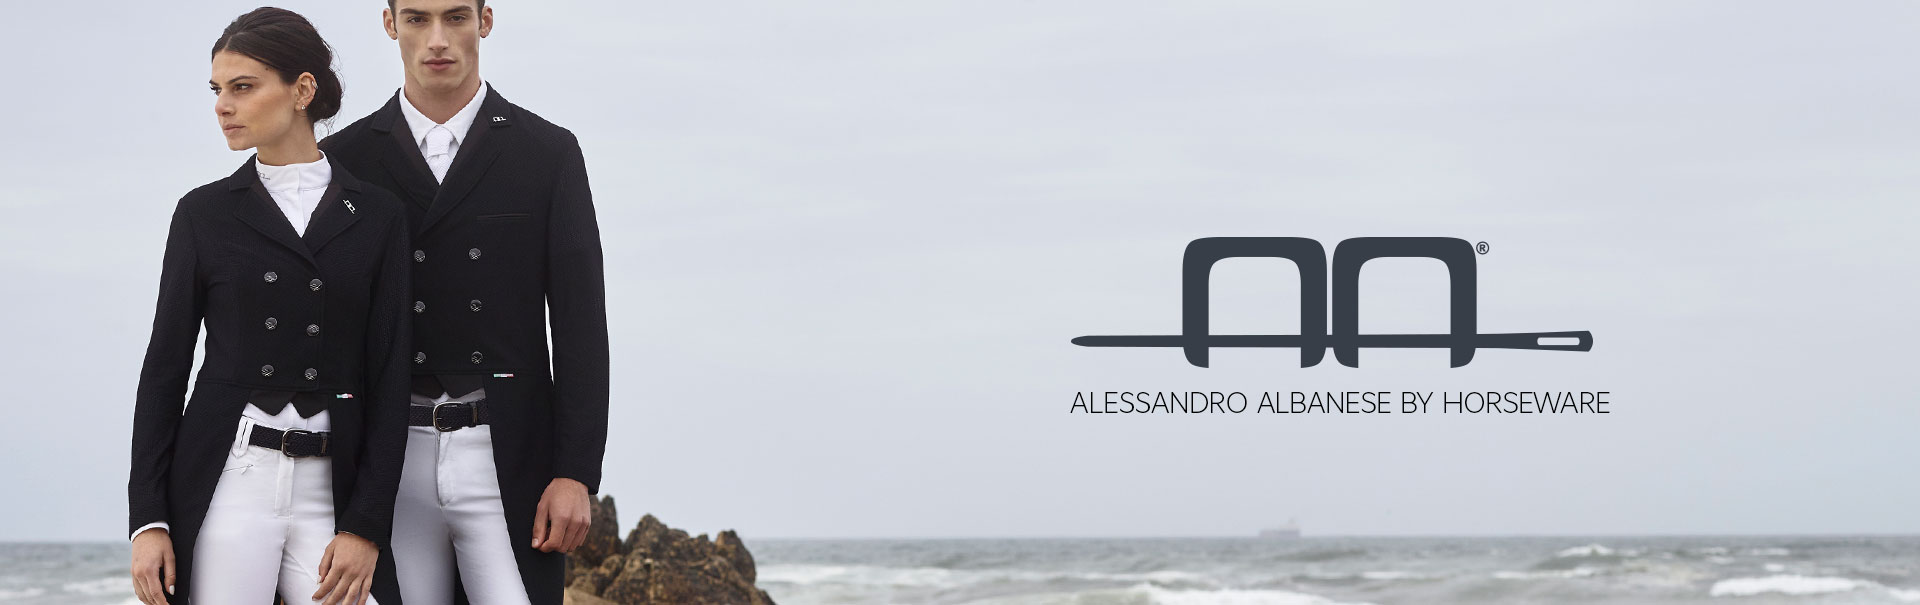 Alessandro Albanese by Horseware